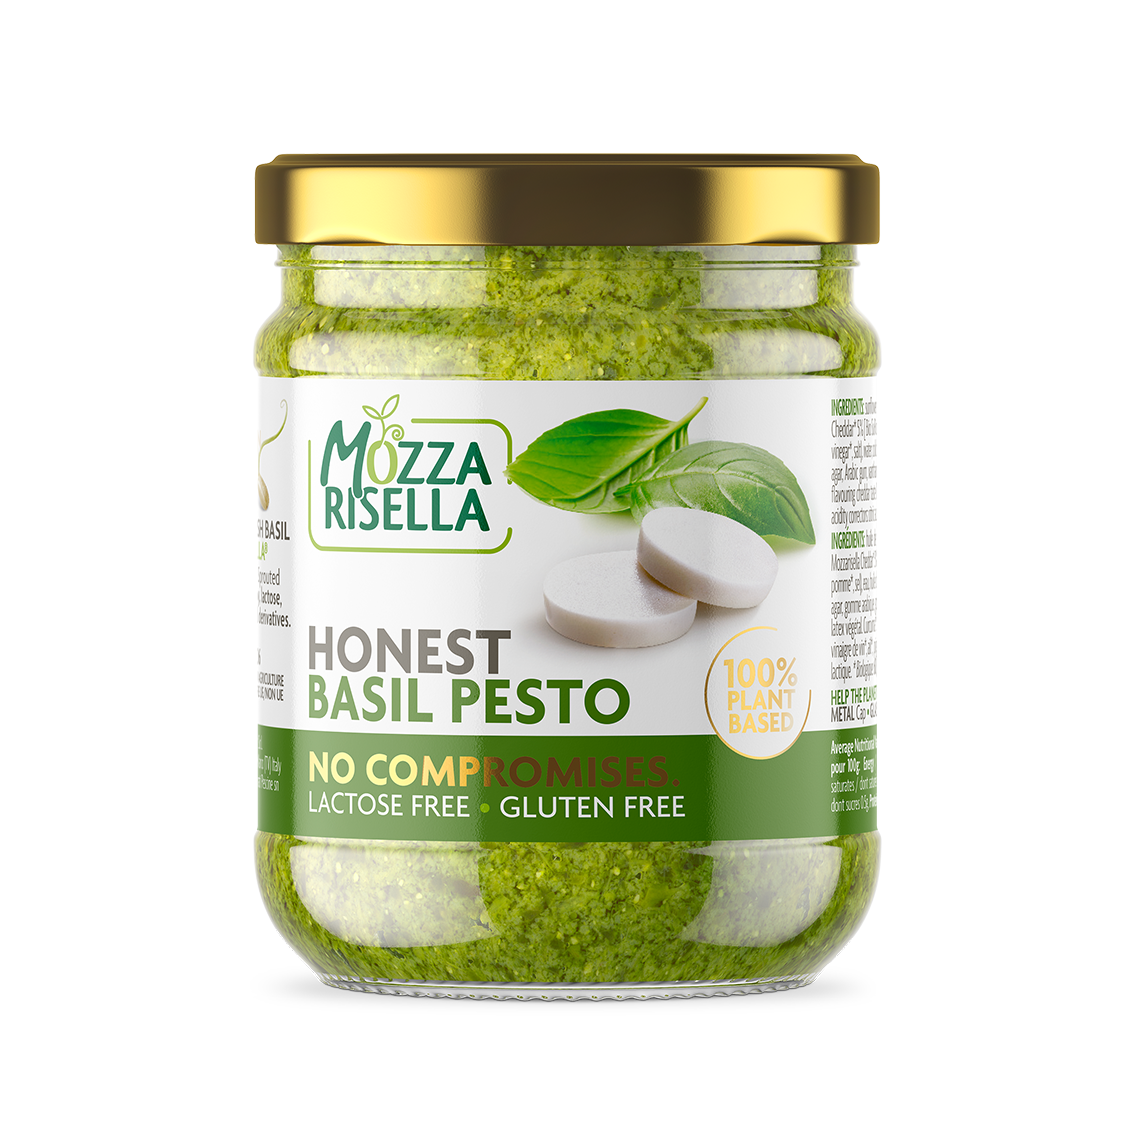 MozzaRisella - Honest Basil Pesto